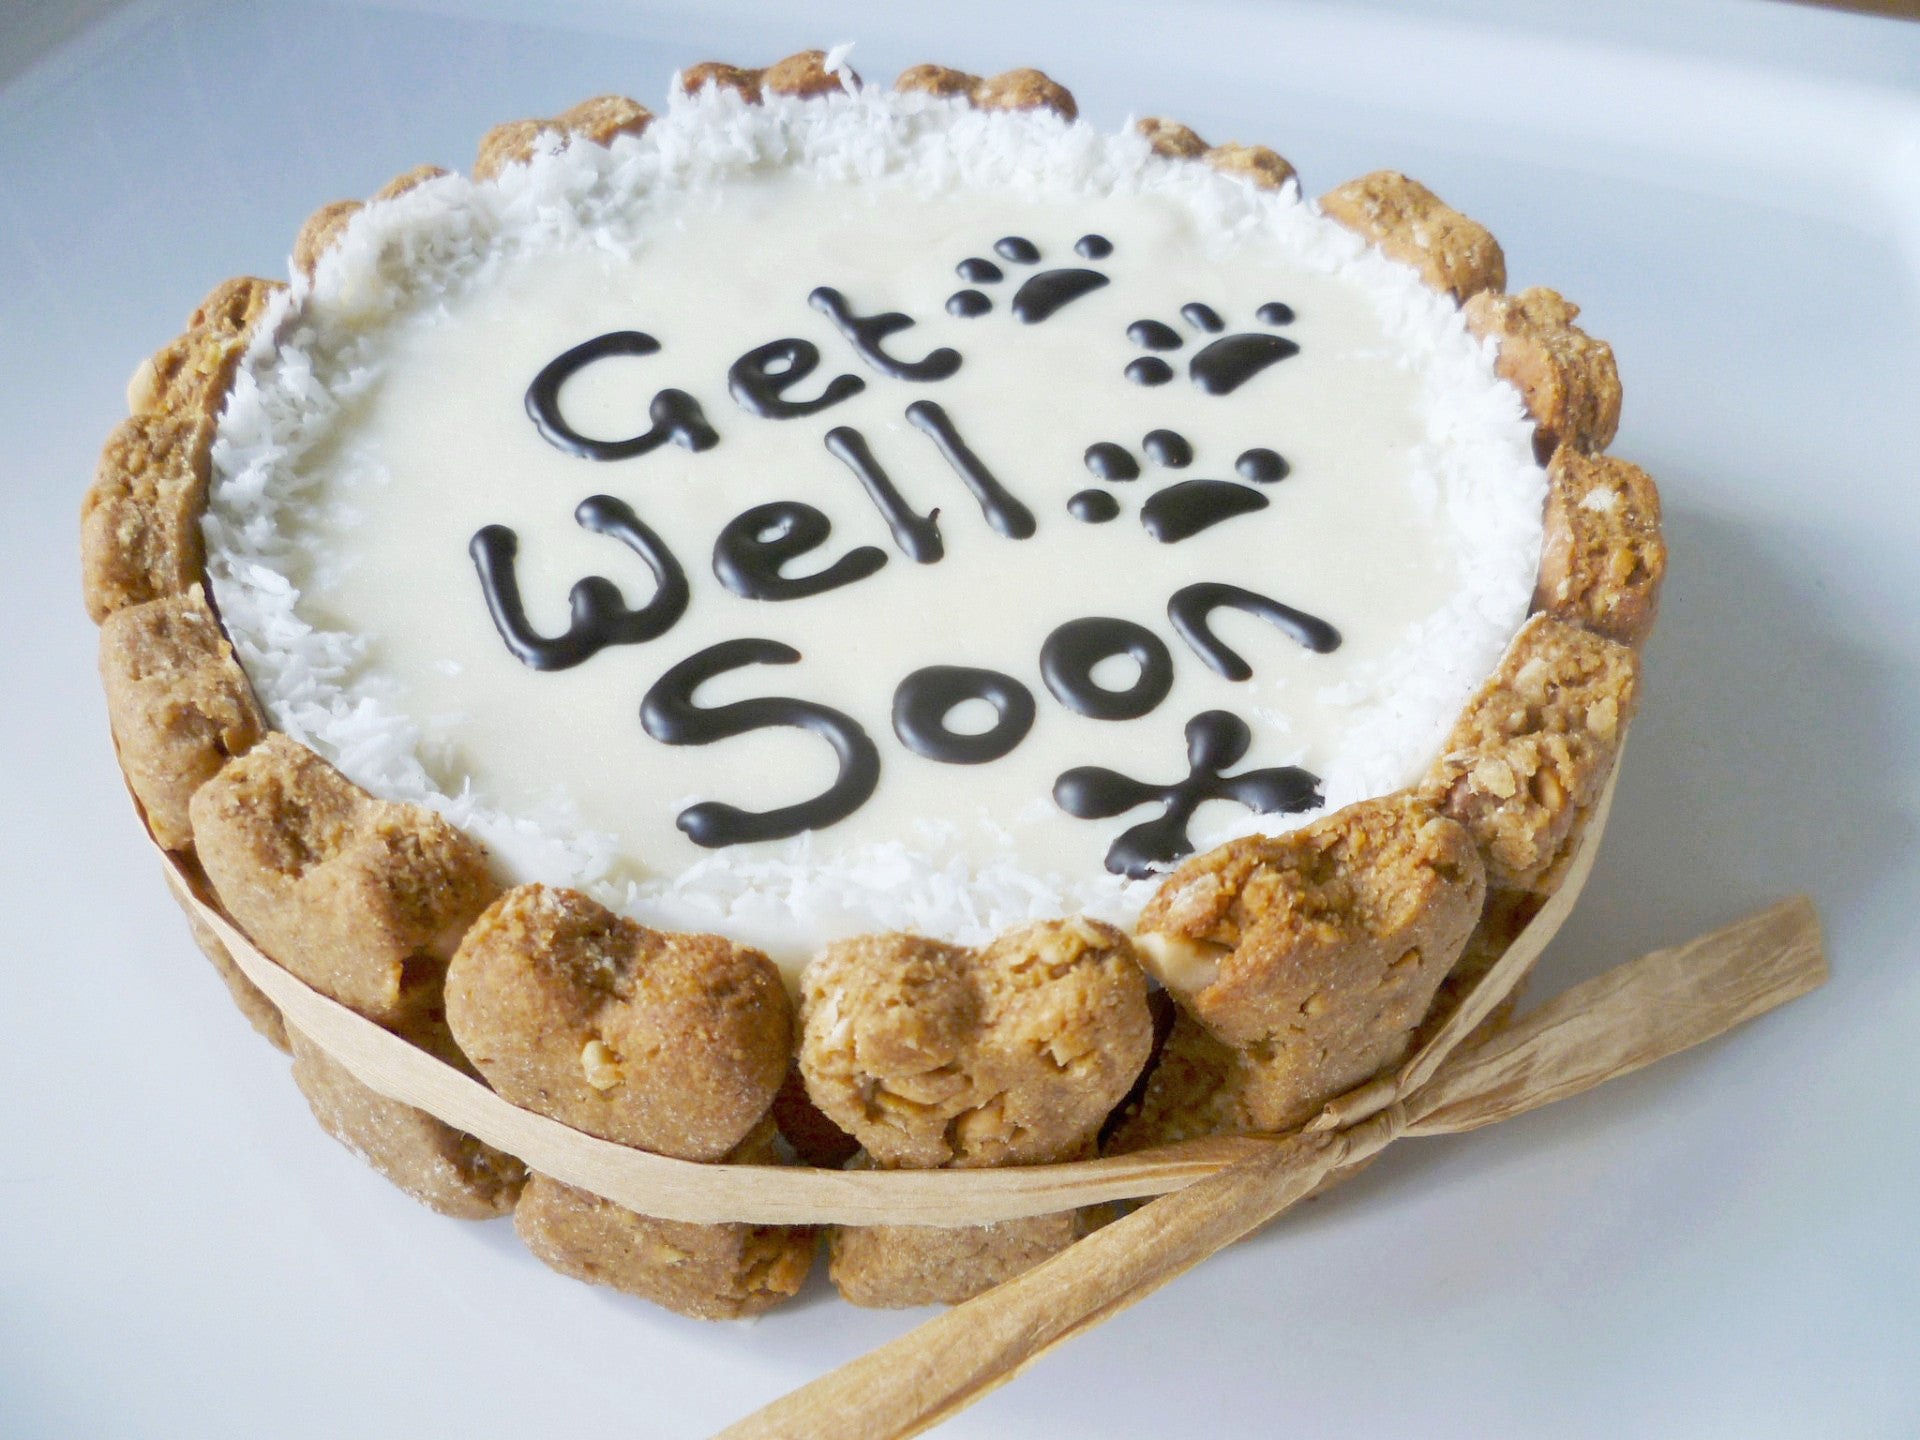 Get Well Soon Cake